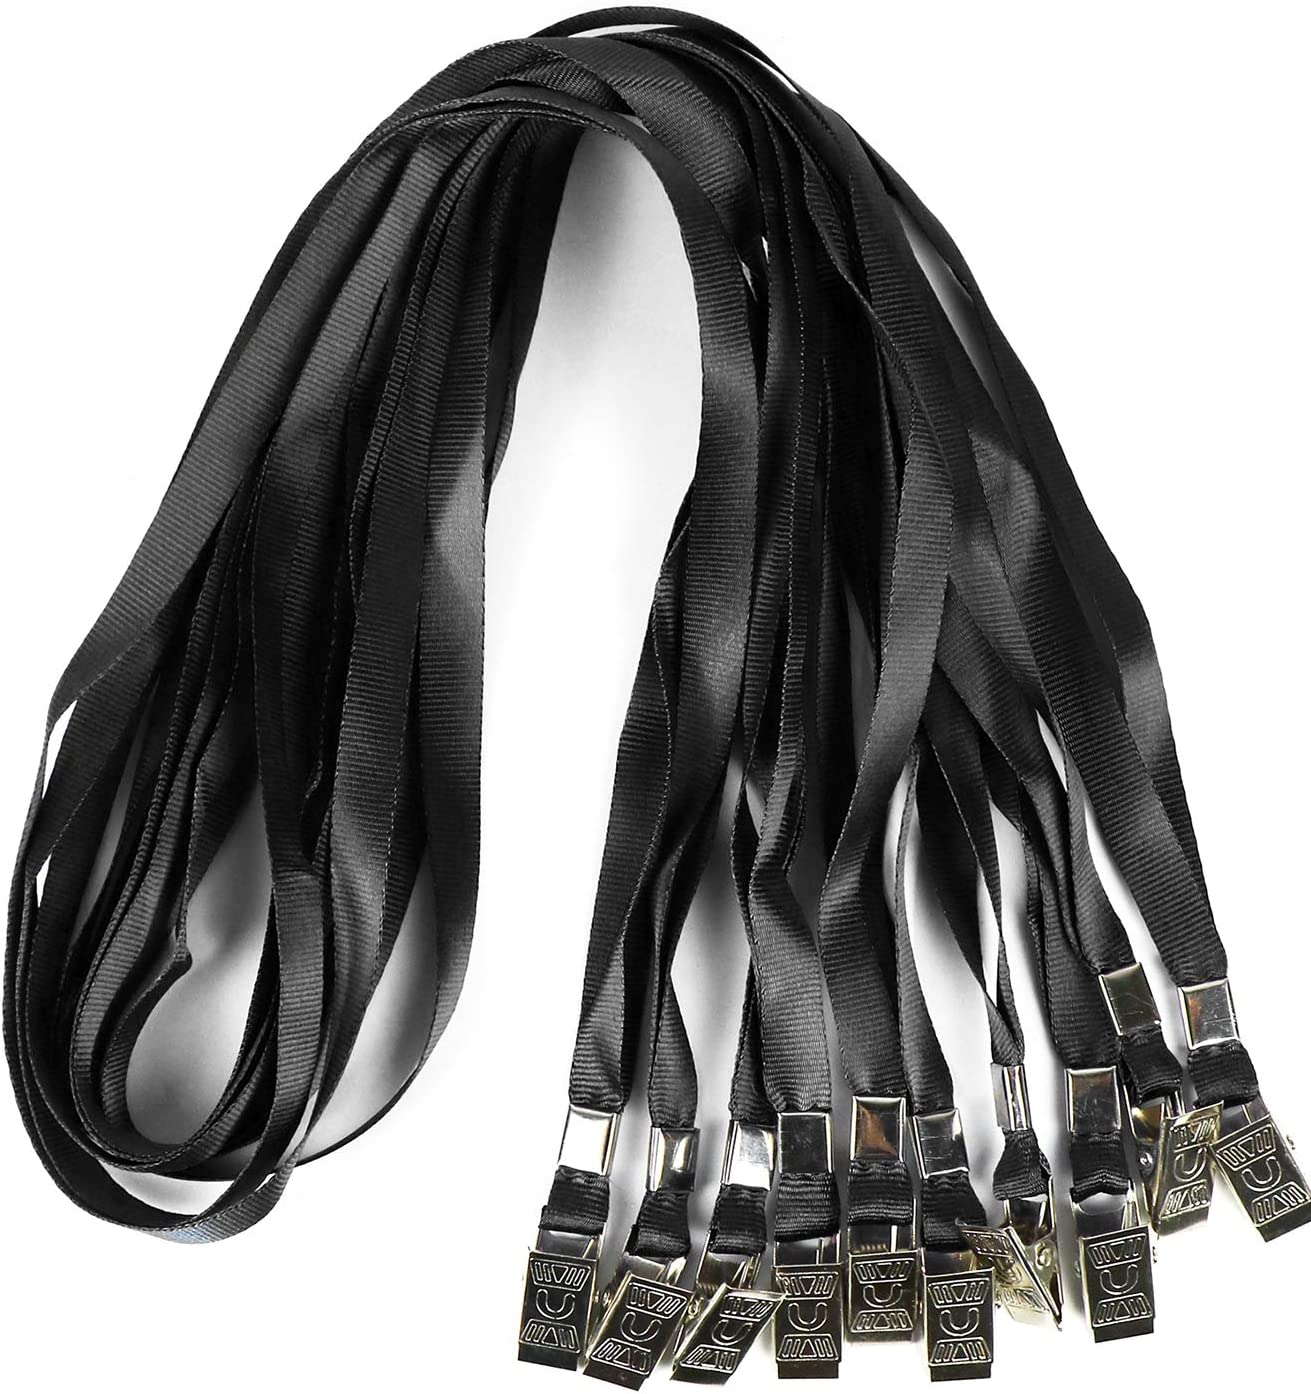 Black, Pack of 50 Lanyards Lanyards Bulk Cruise Lanyard Id Badges Flat Lanyards Nylon Badge Lanyards with Clip Comfortable Neck Straps for ID Card Name Badge Holder Kids Women Men